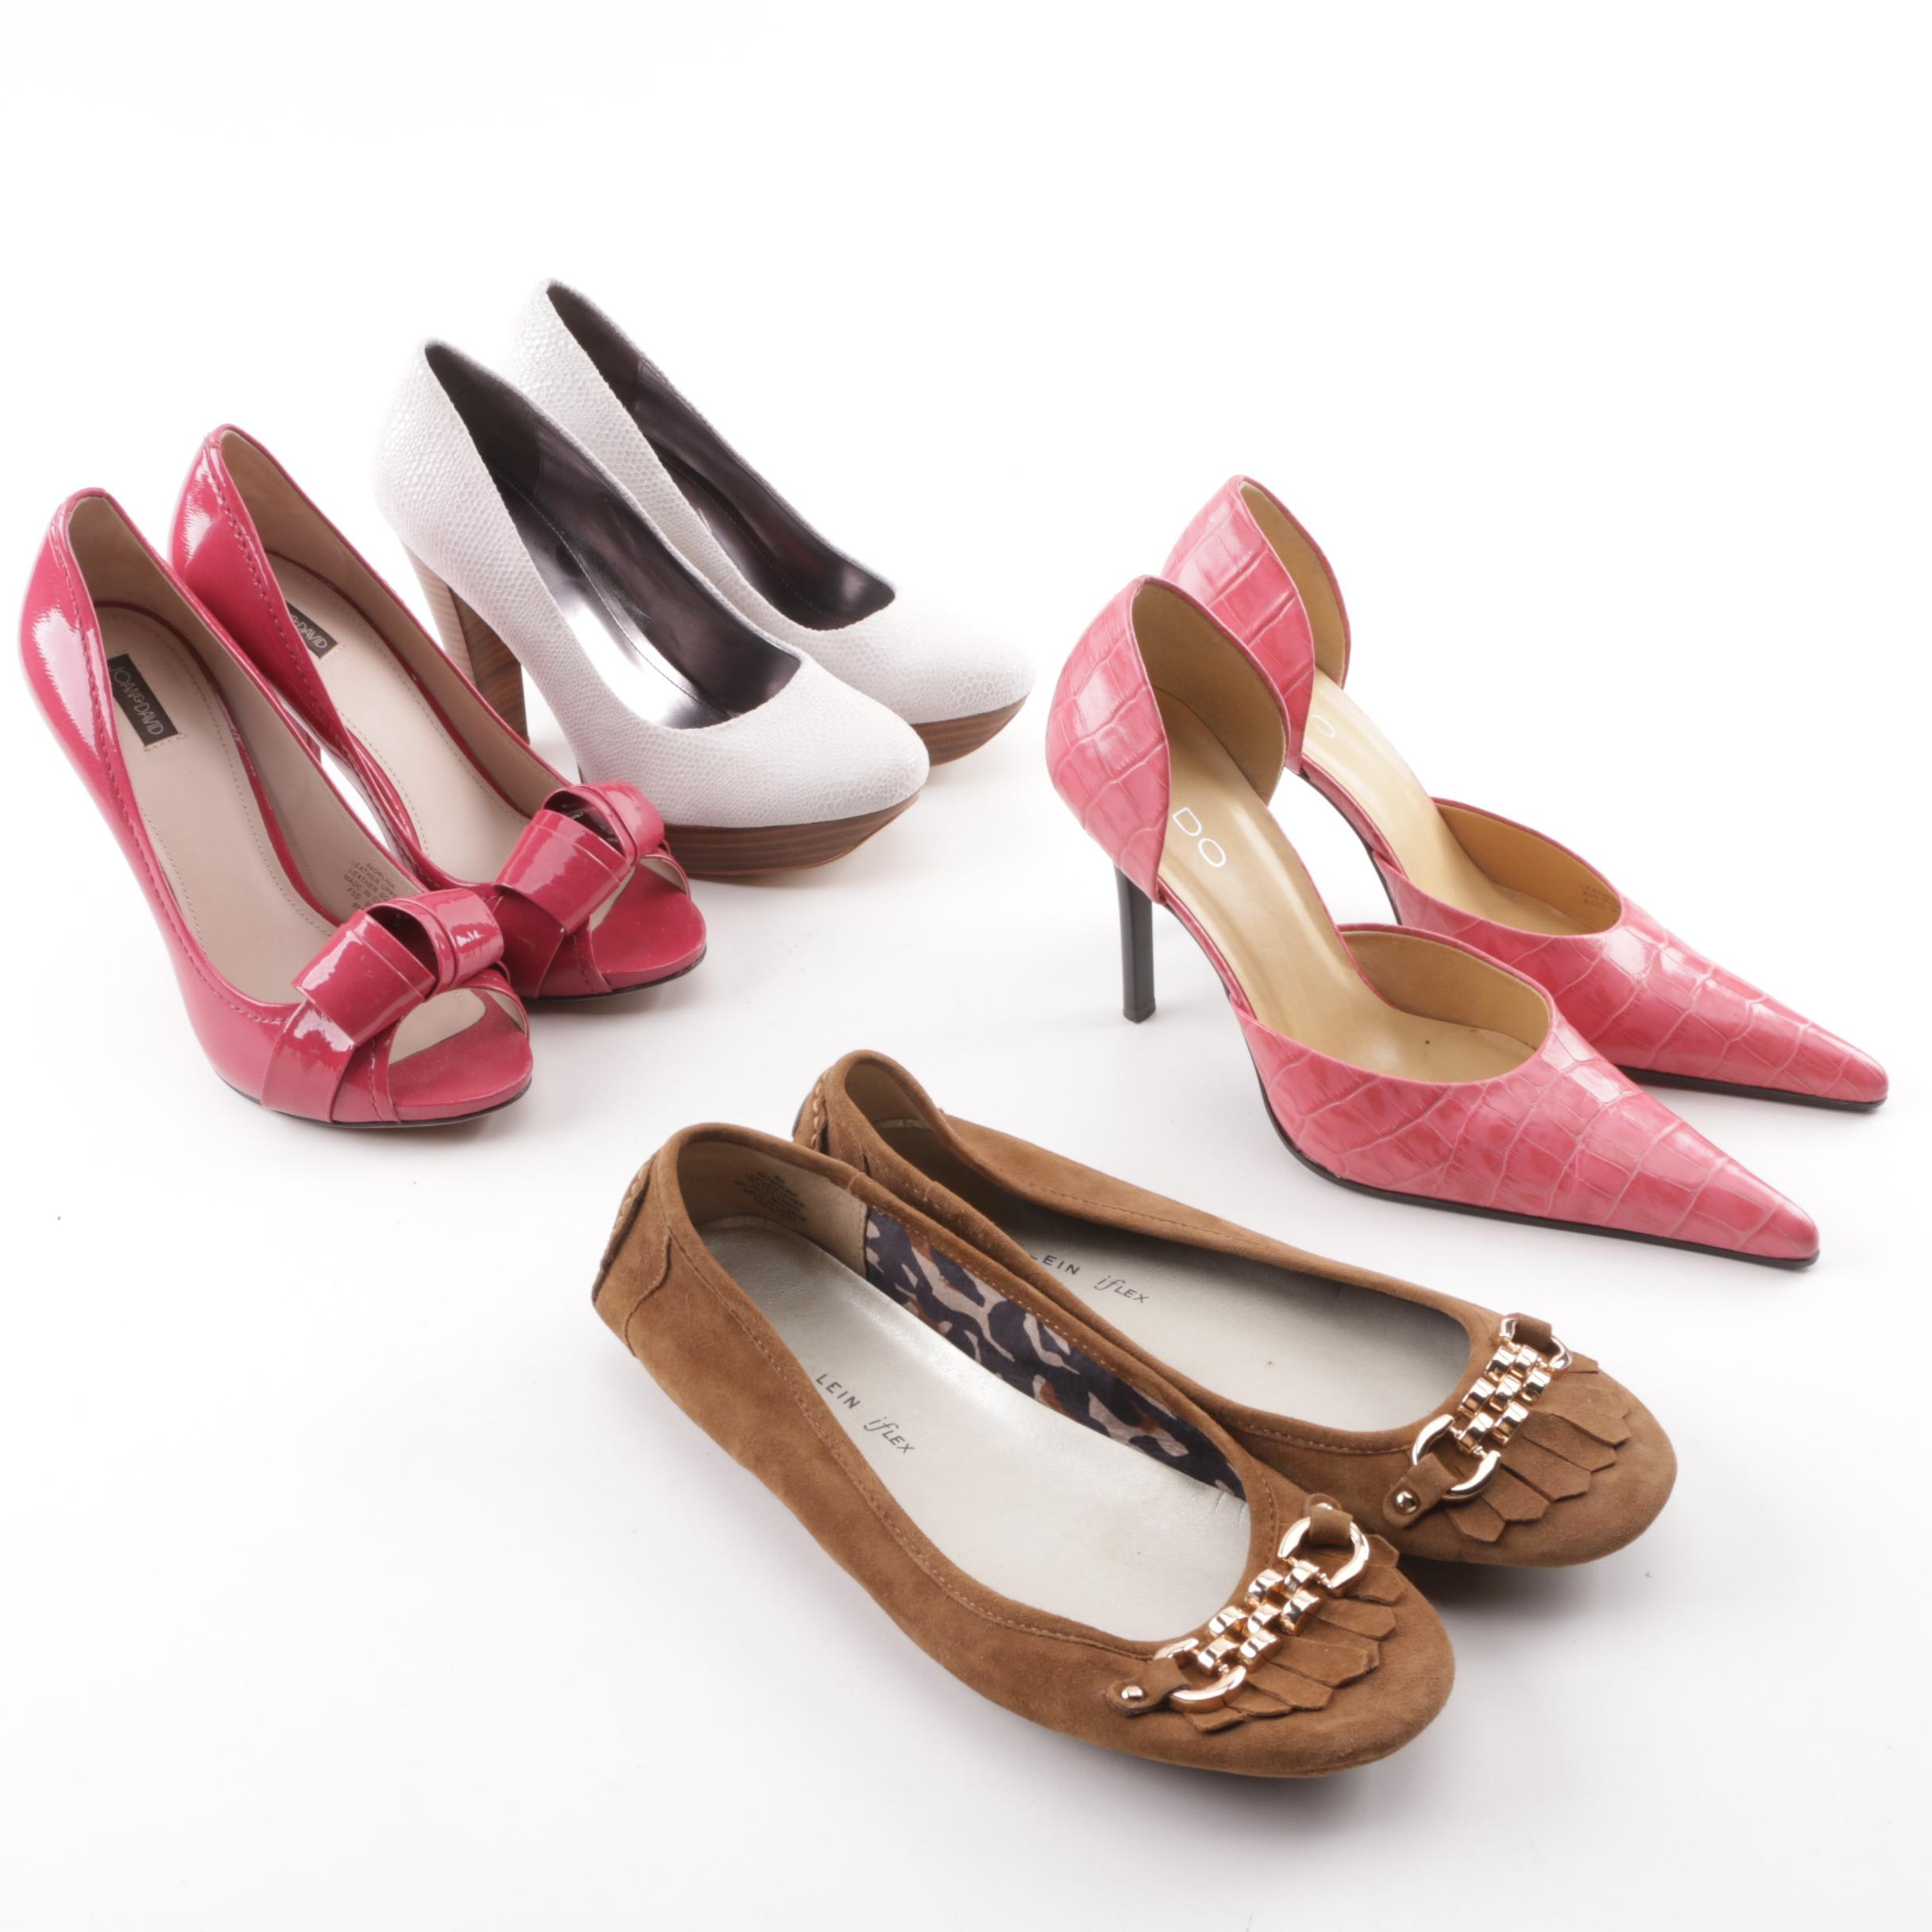 Women's High-Heeled Pumps and Moccasins including Calvin Klein and Joan & David